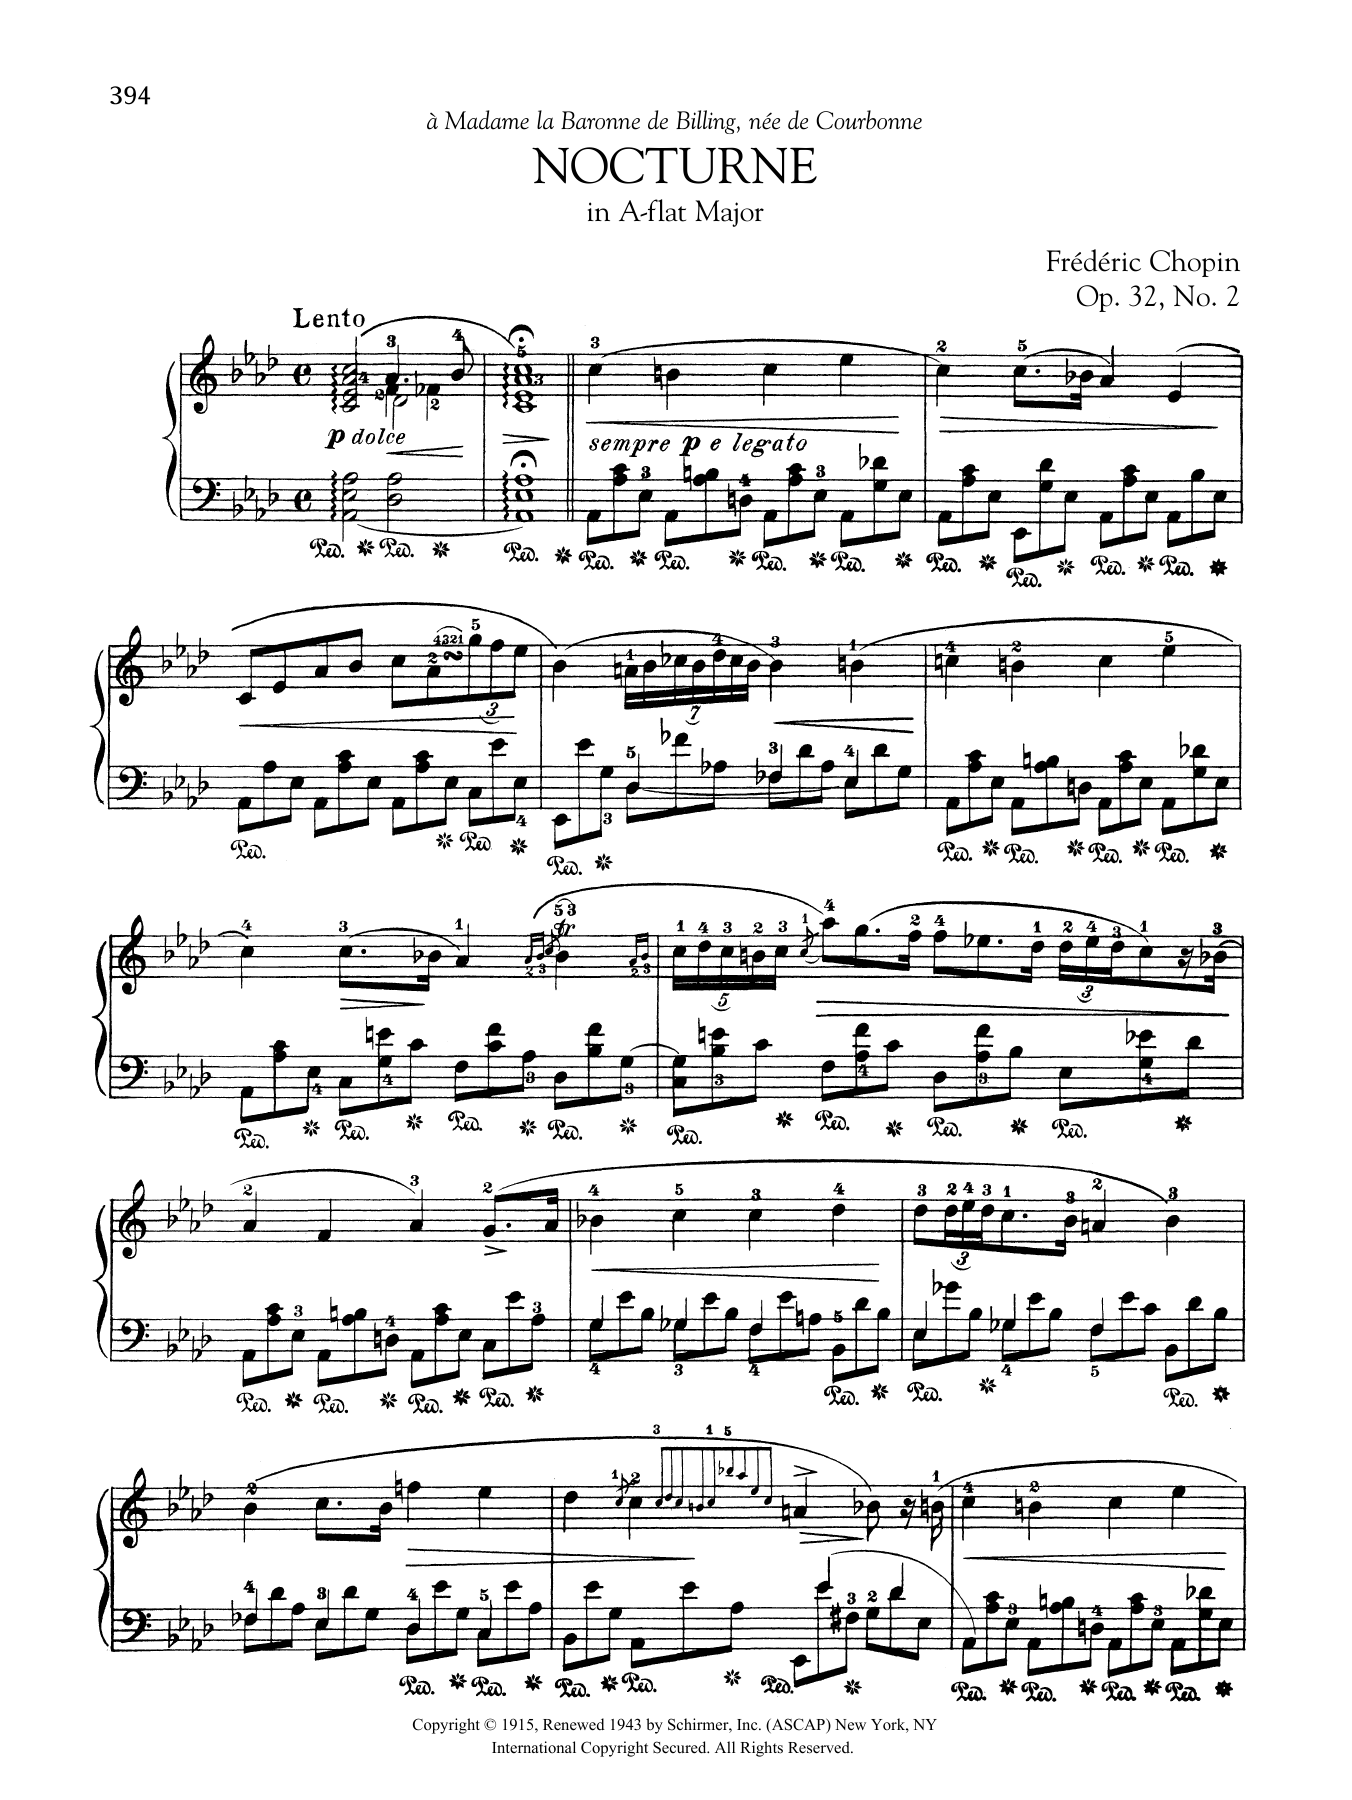 Nocturne in A-flat Major, Op. 32, No. 2 Sheet Music